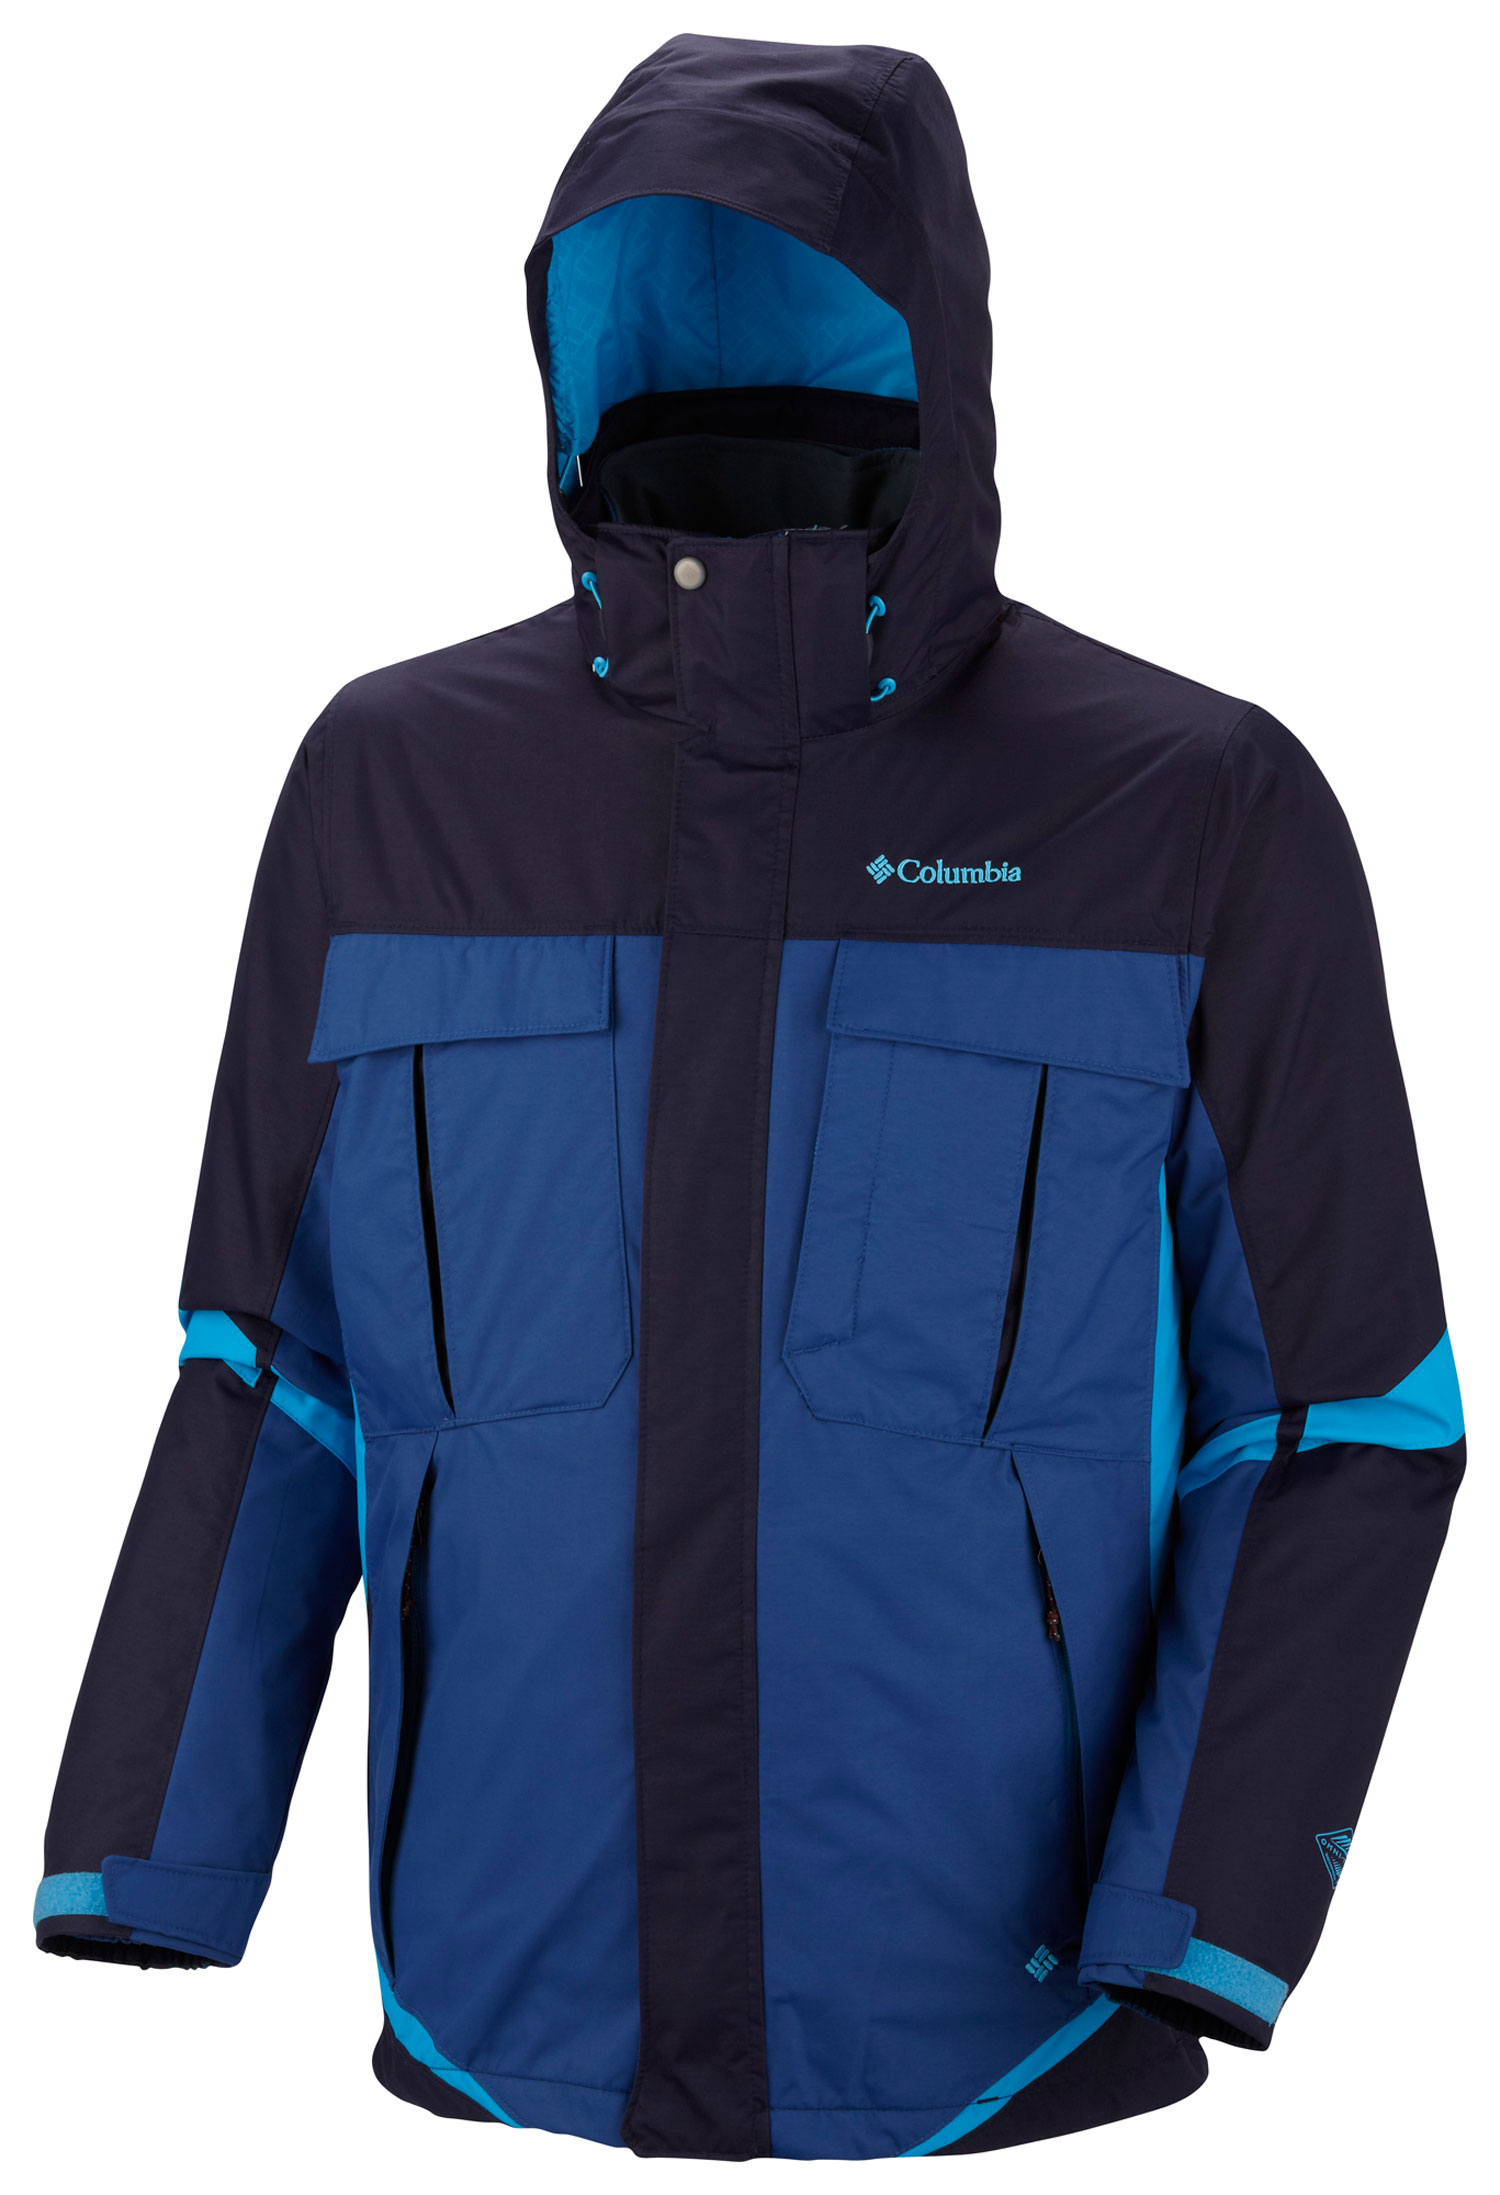 Key Features of the Columbia Bugaboo Interchange Jacket: FABRIC Shell: 100% nylon Legacy twill, 100% polyester Legacy twill. Lining: 100% nylon taffeta. Liner: 100% polyester microfiber. Lining: 100% polyester tricot. Insulation: 100% polyester, 80g Microtemp insulation. FIT Modern Classic Omni-Tech waterproof/breathable critically seam sealed Liner: 80 gram Microtemp Zip-in Interchange System Removable, adjustable storm hood Drop tail Interior security pocket Goggle pocket Zip-closed chest pocket Adjustable cuff tabs - $151.95